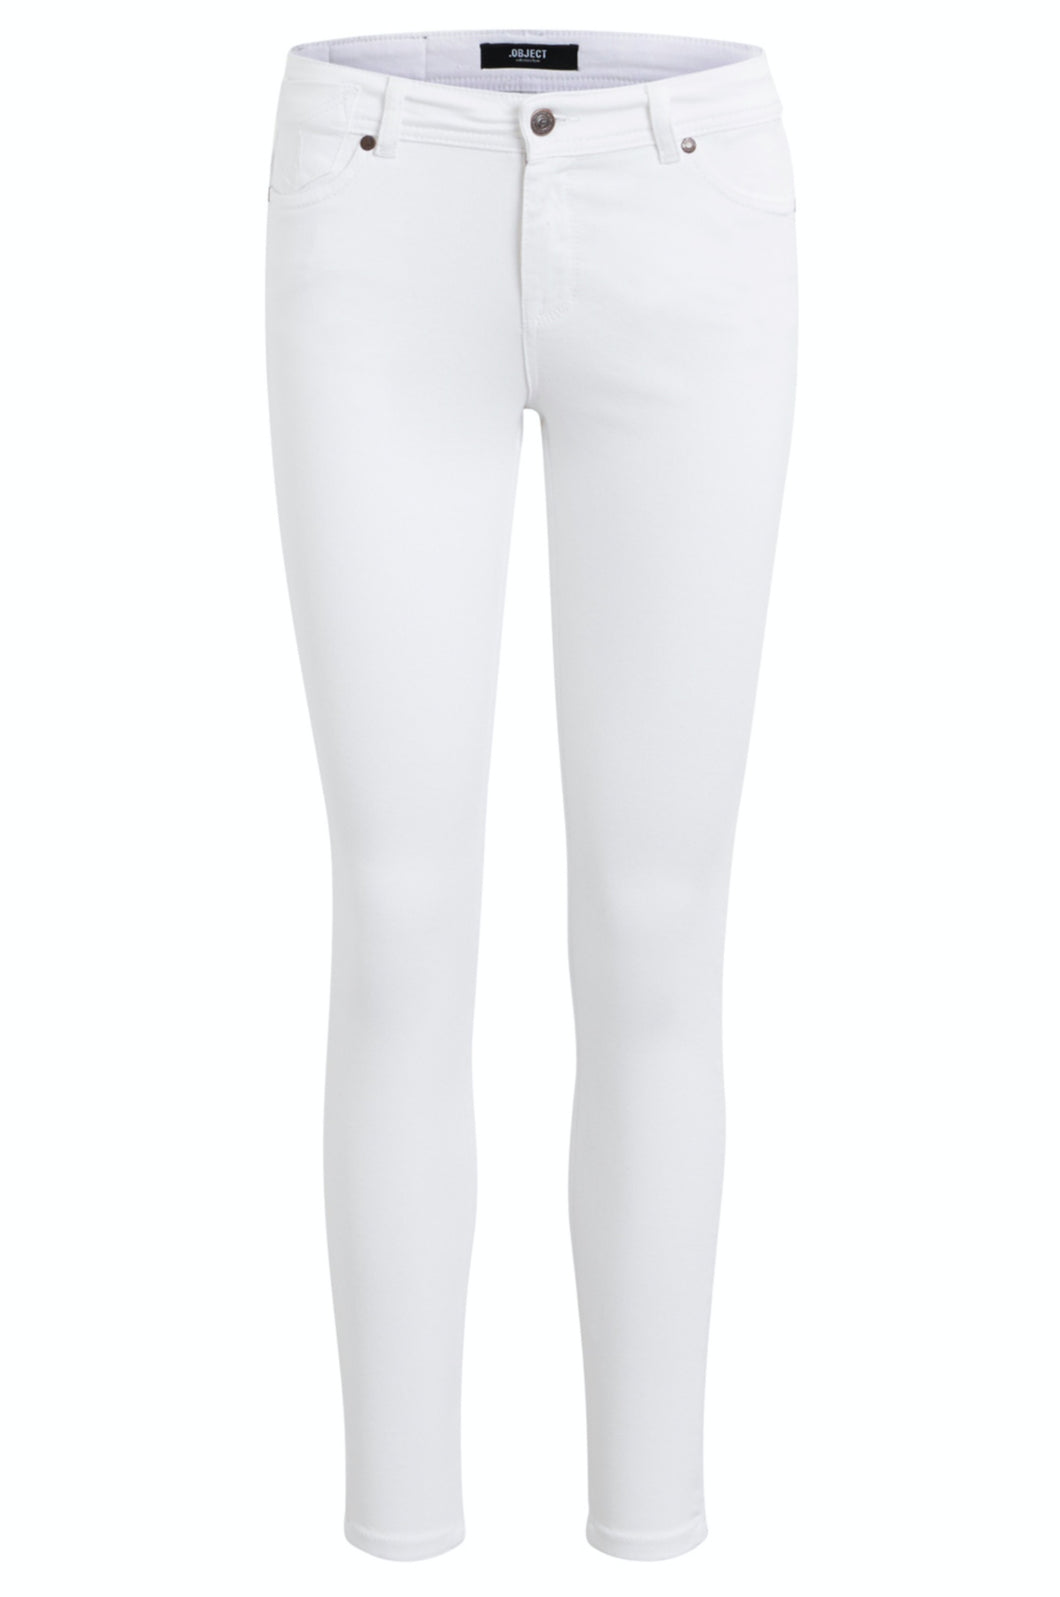 Sarah 7/8 Pants - White / 25 - JEANS DAM, DENIM, JEANS,